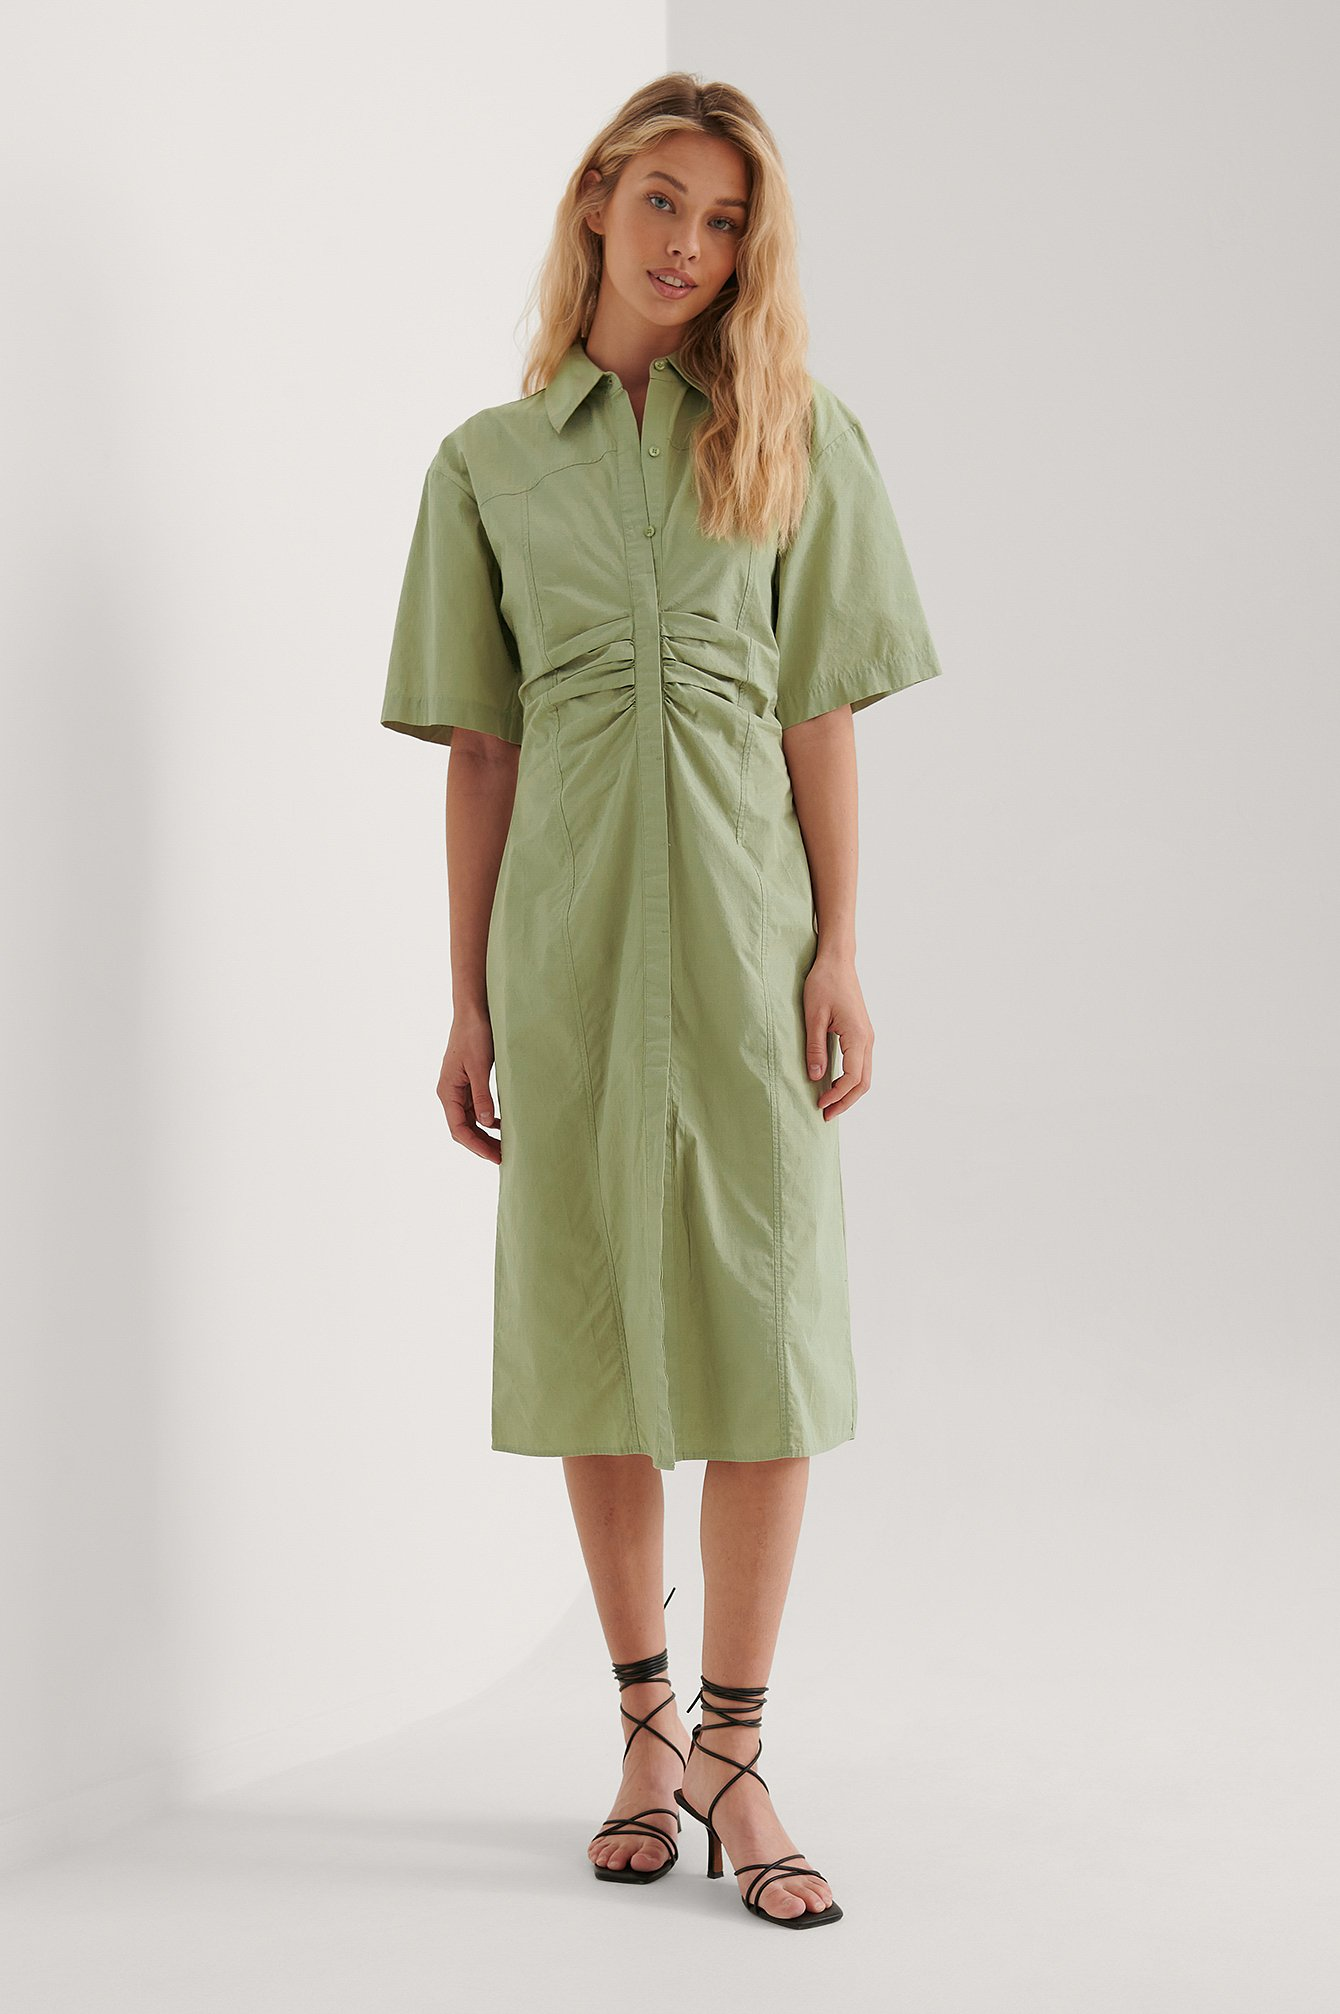 Dusty Green Short Sleeve Gathered Midi Dress